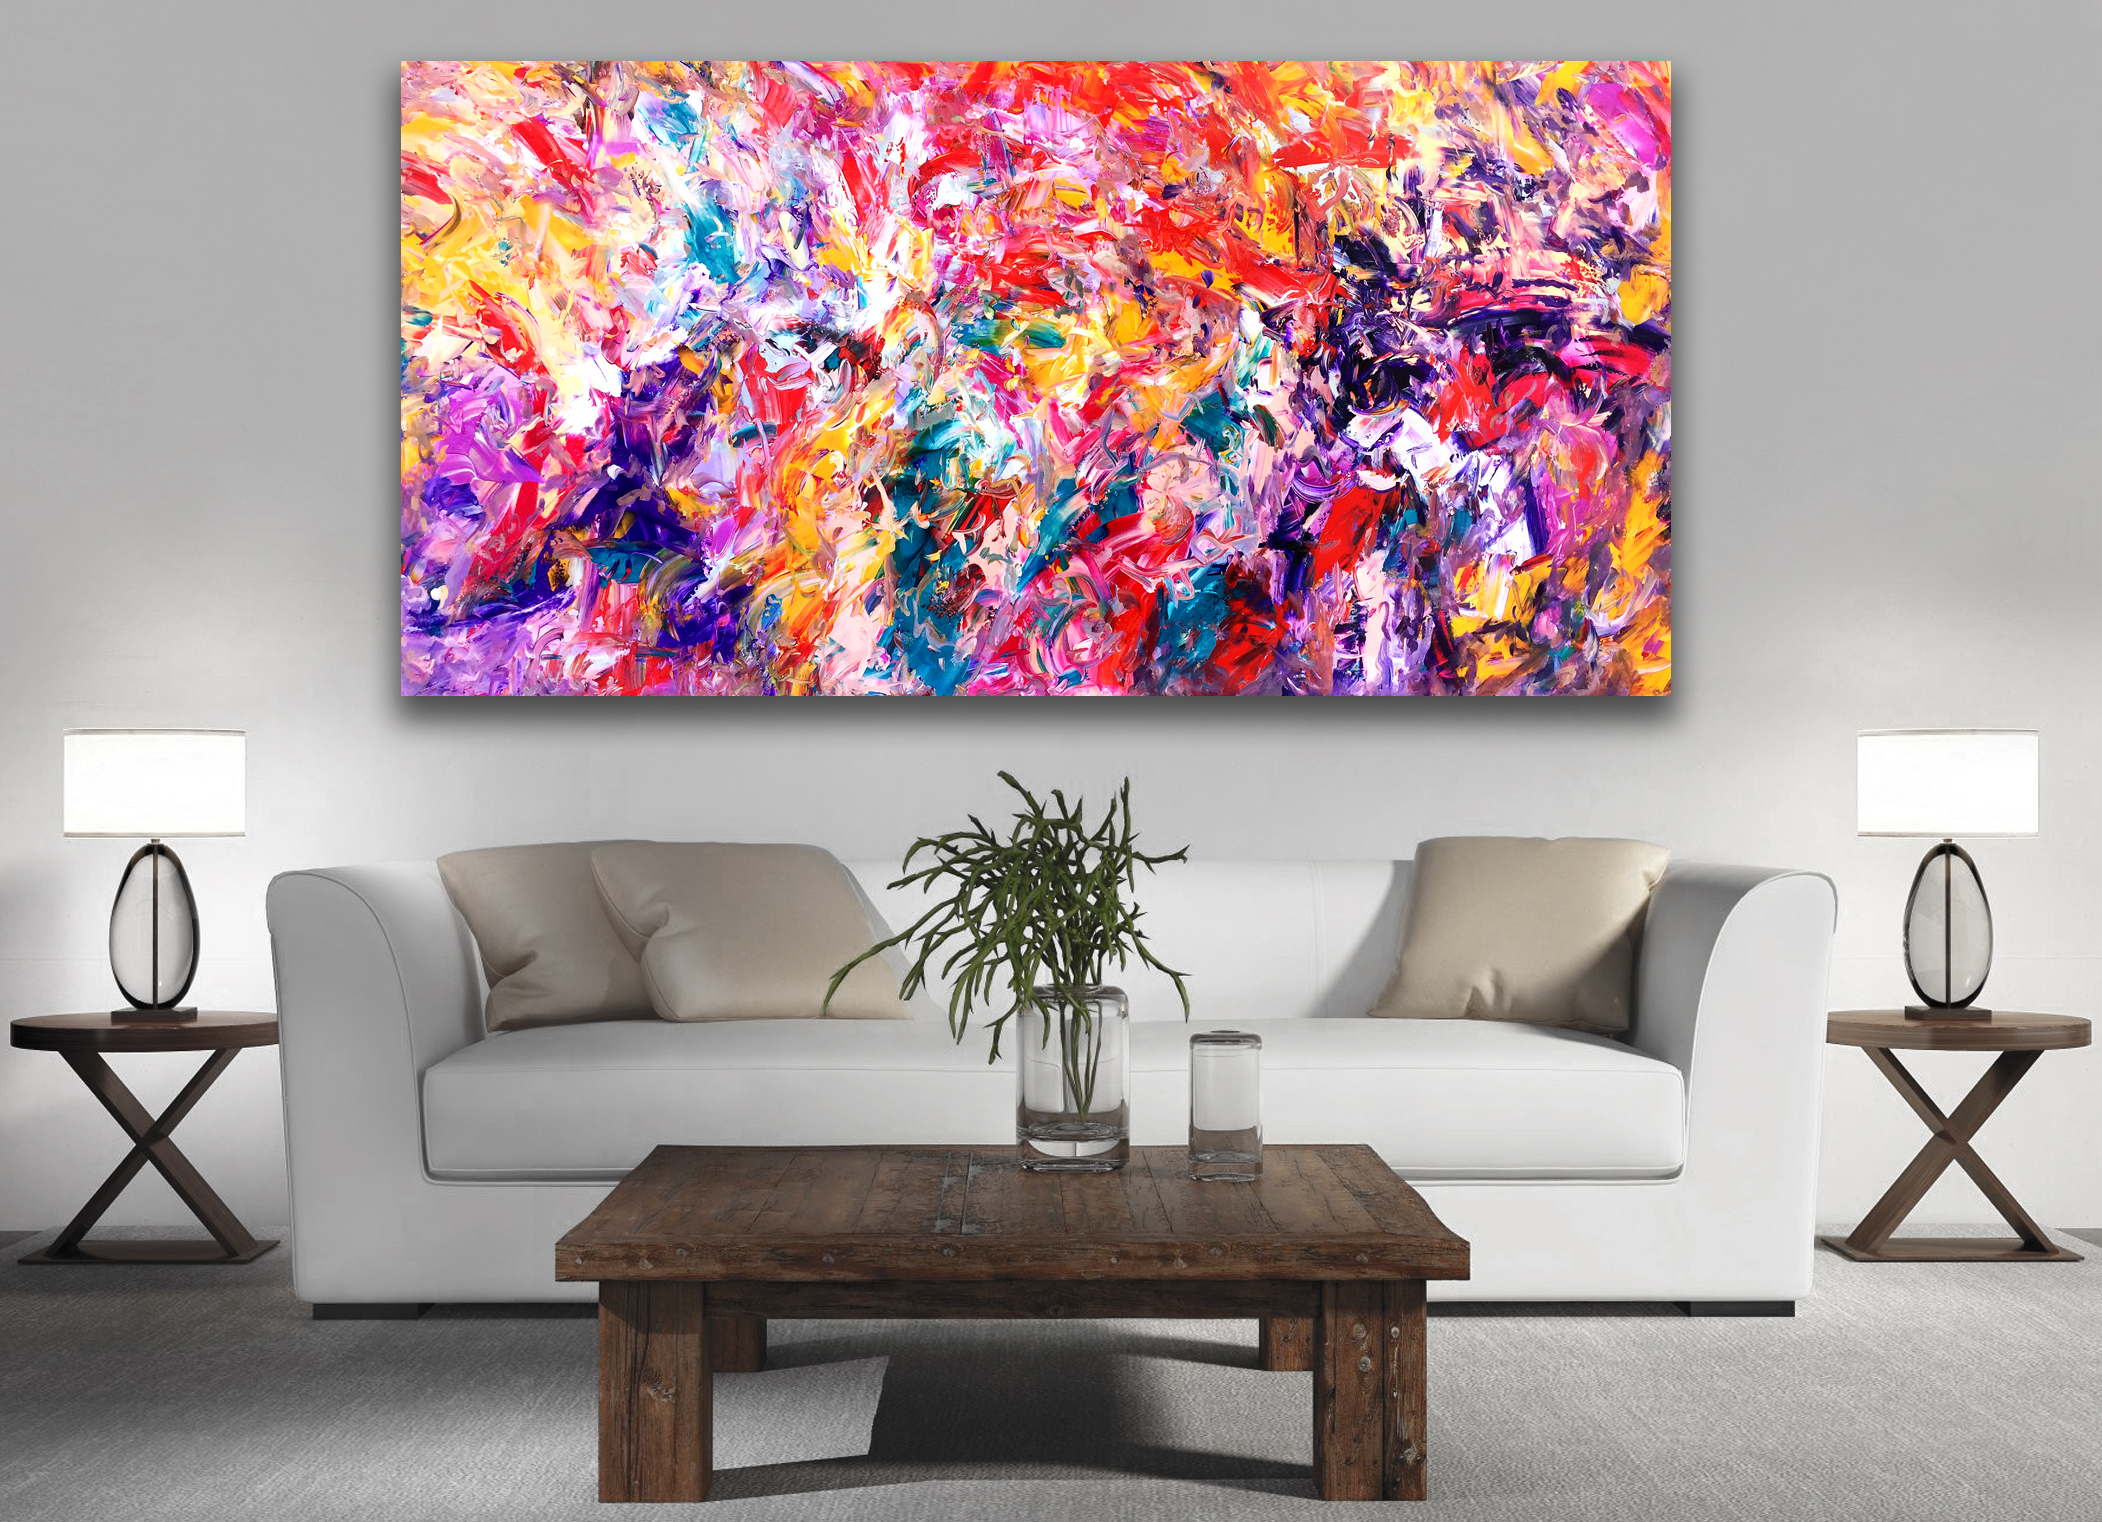 Intangible - Abstract Expressionism by Estelle Asmodelle